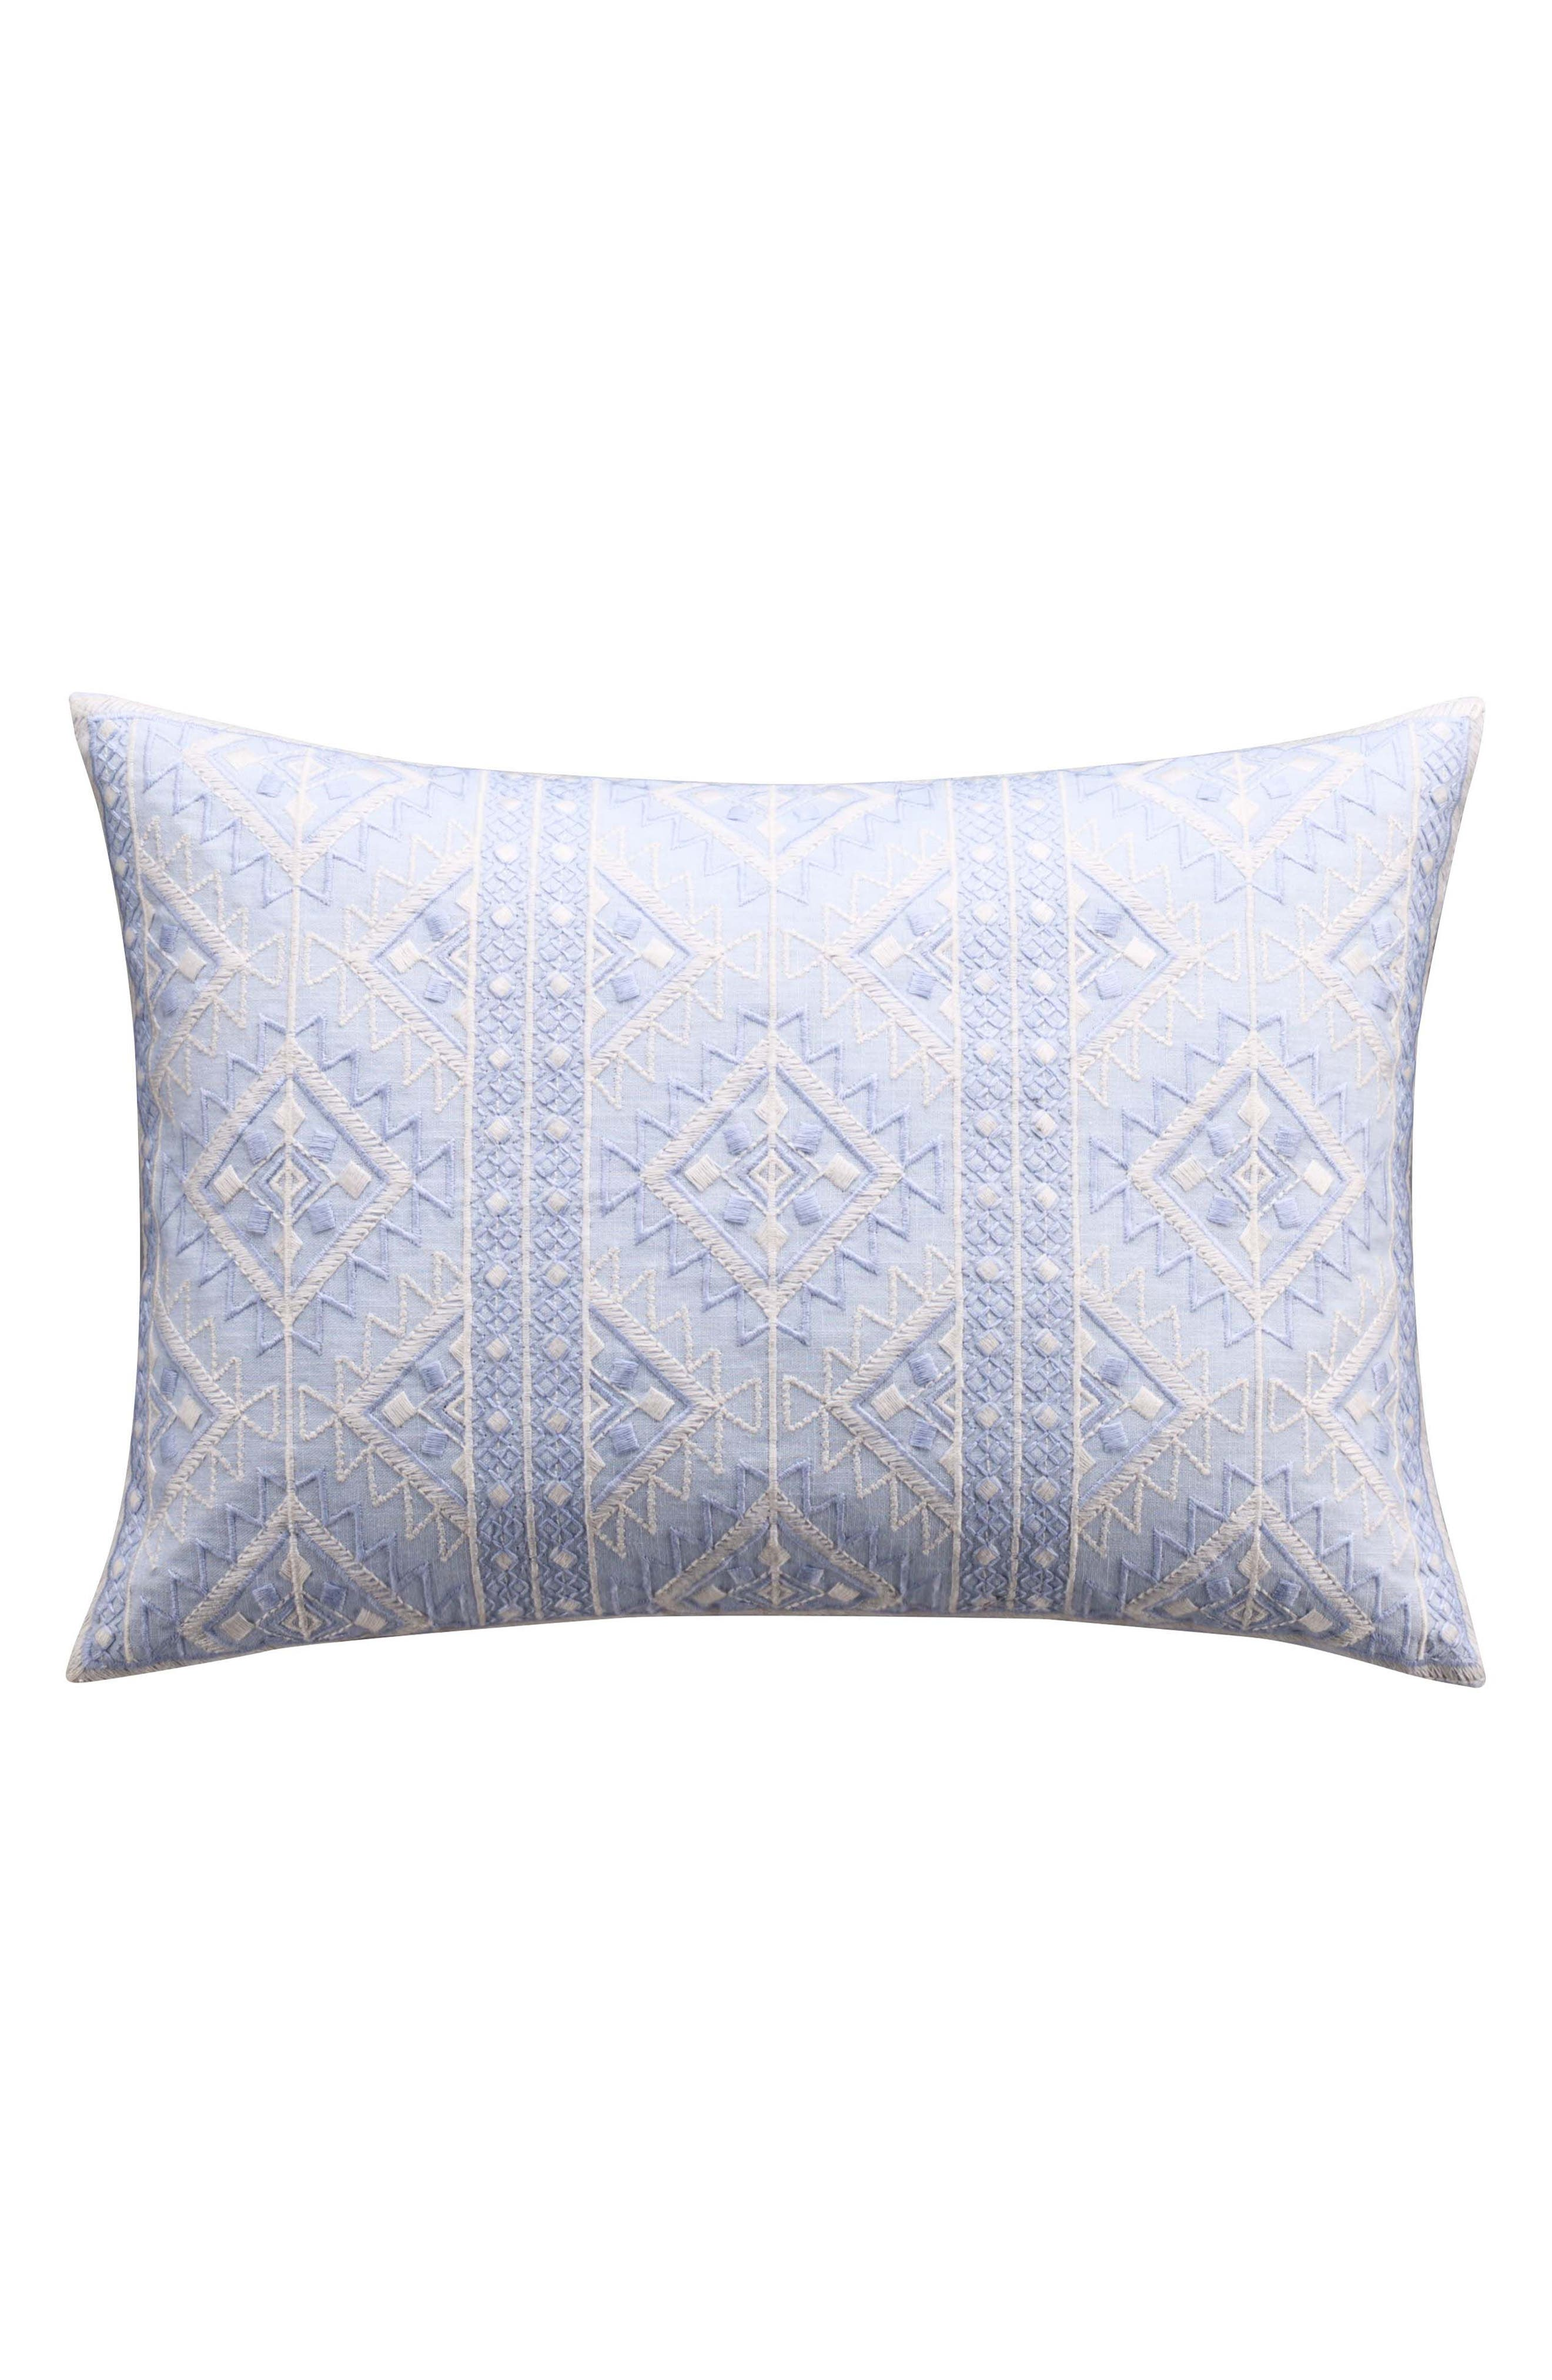 cupcakes and cashmere Geometric Embroidered Accent Pillow